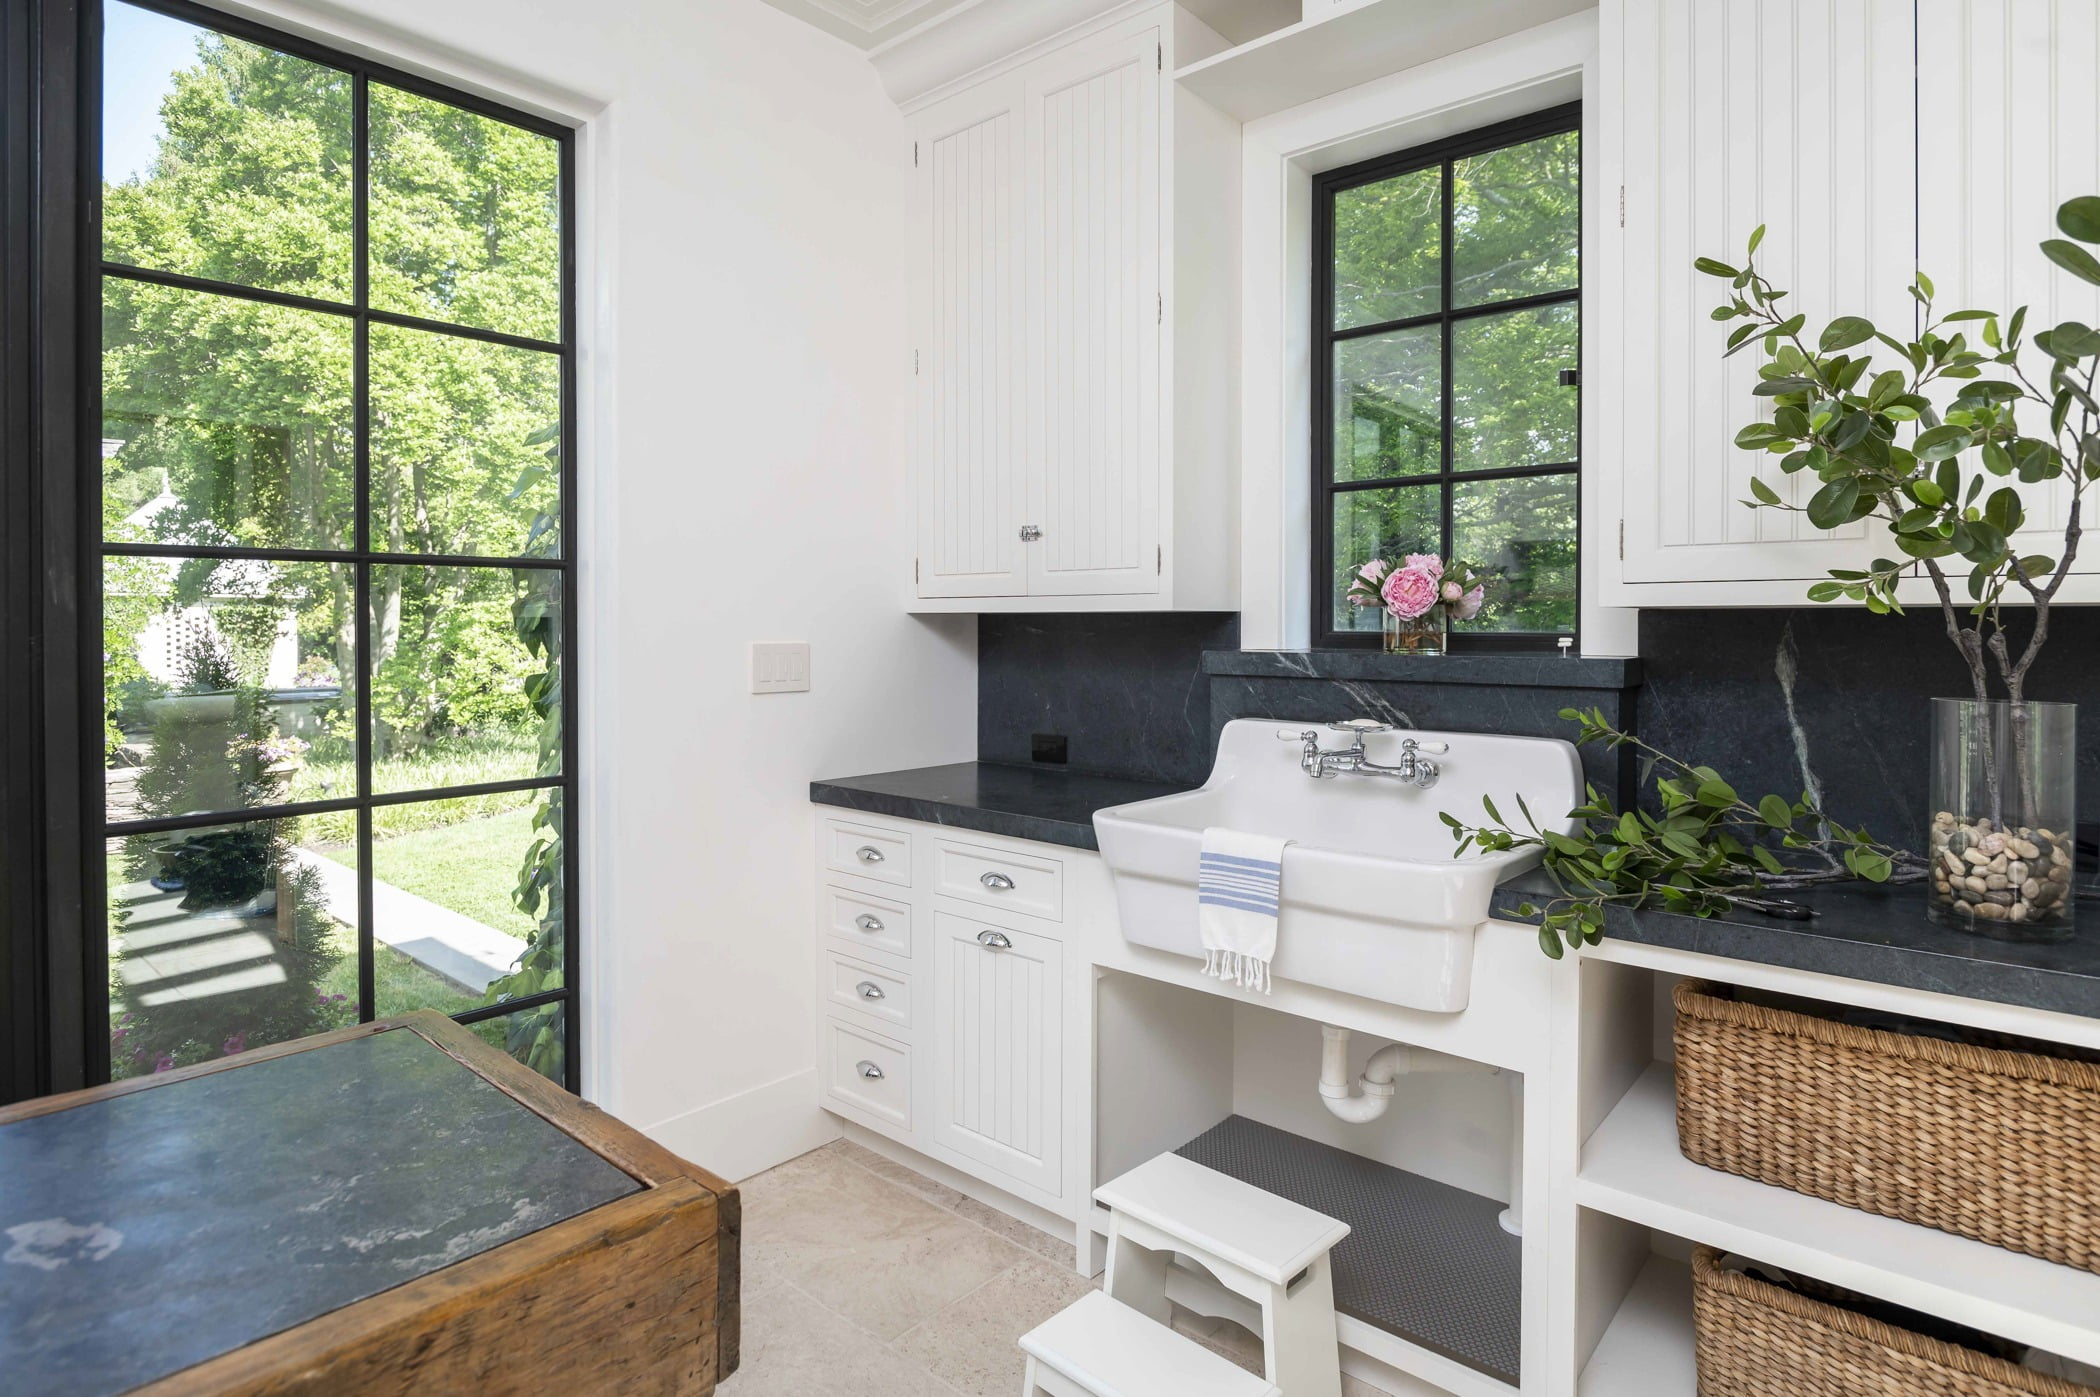 Coastal style washroom with white paneled cabinetry, dark granite countertops, and a dark metal window and door accent (Different angle)